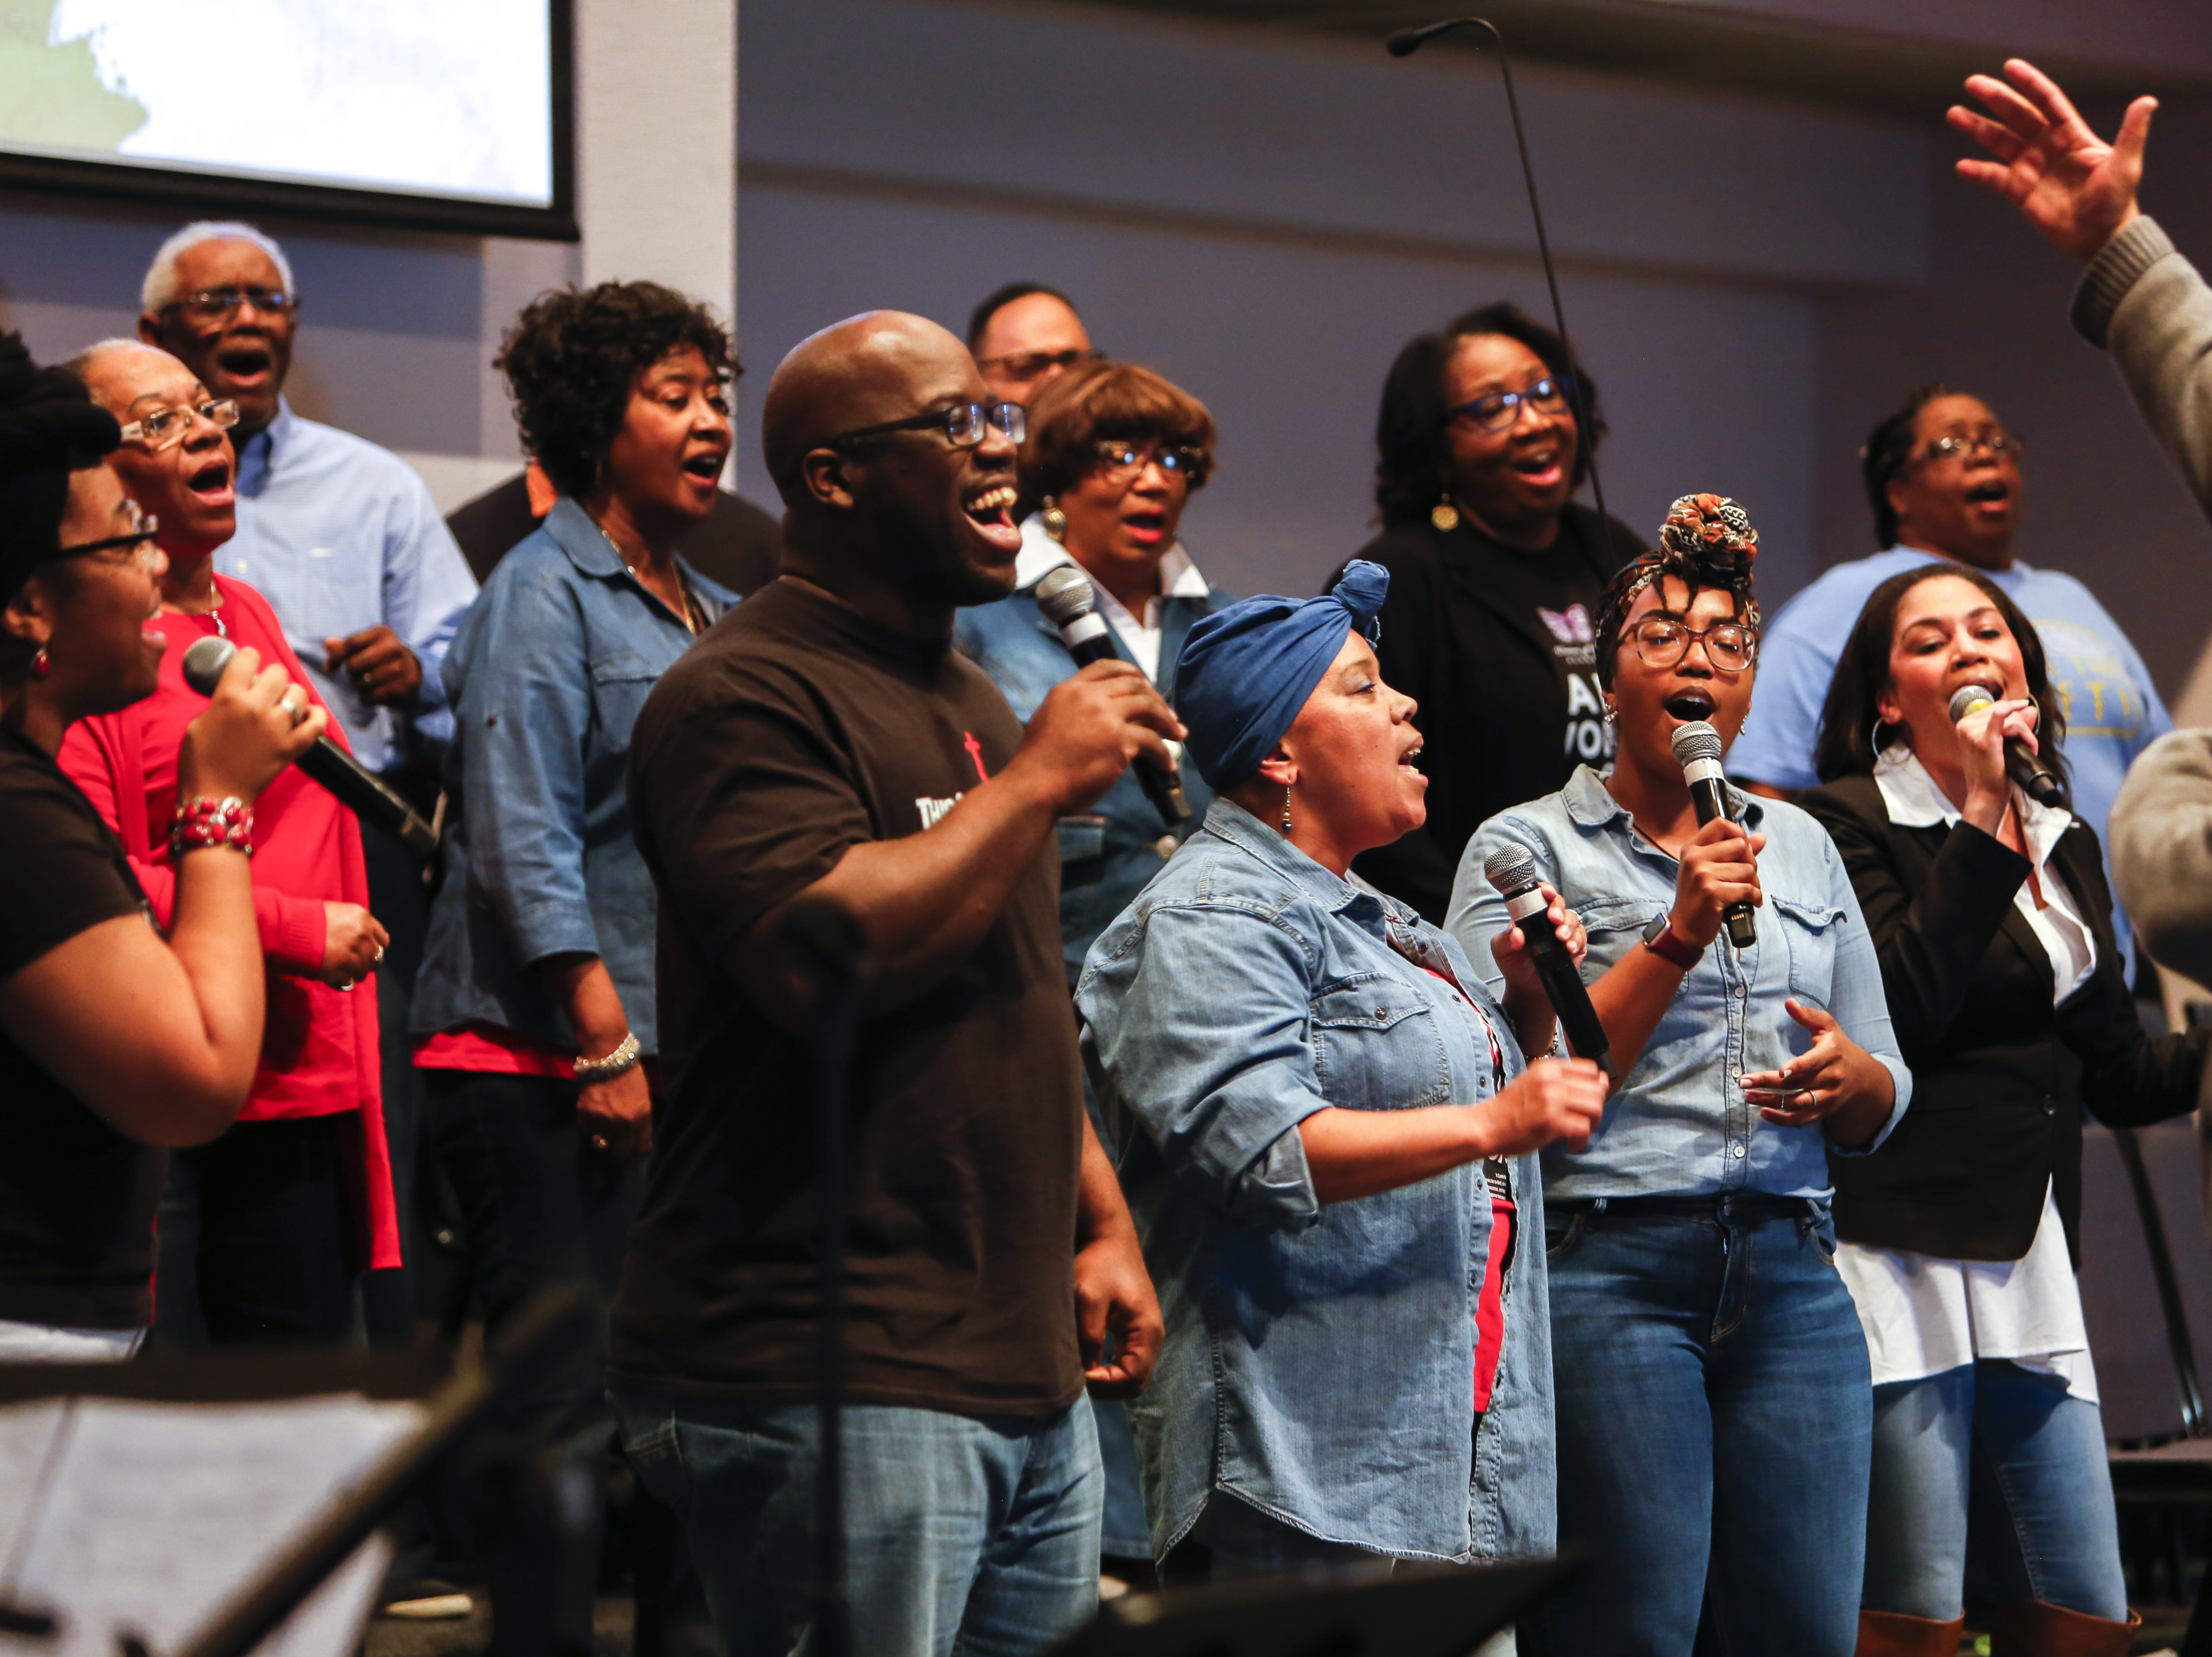 The praise team sings together, led by music director Kendall Washington, far right, at the First Institutional Baptist Church on Sunday, Jan. 20, 2019.